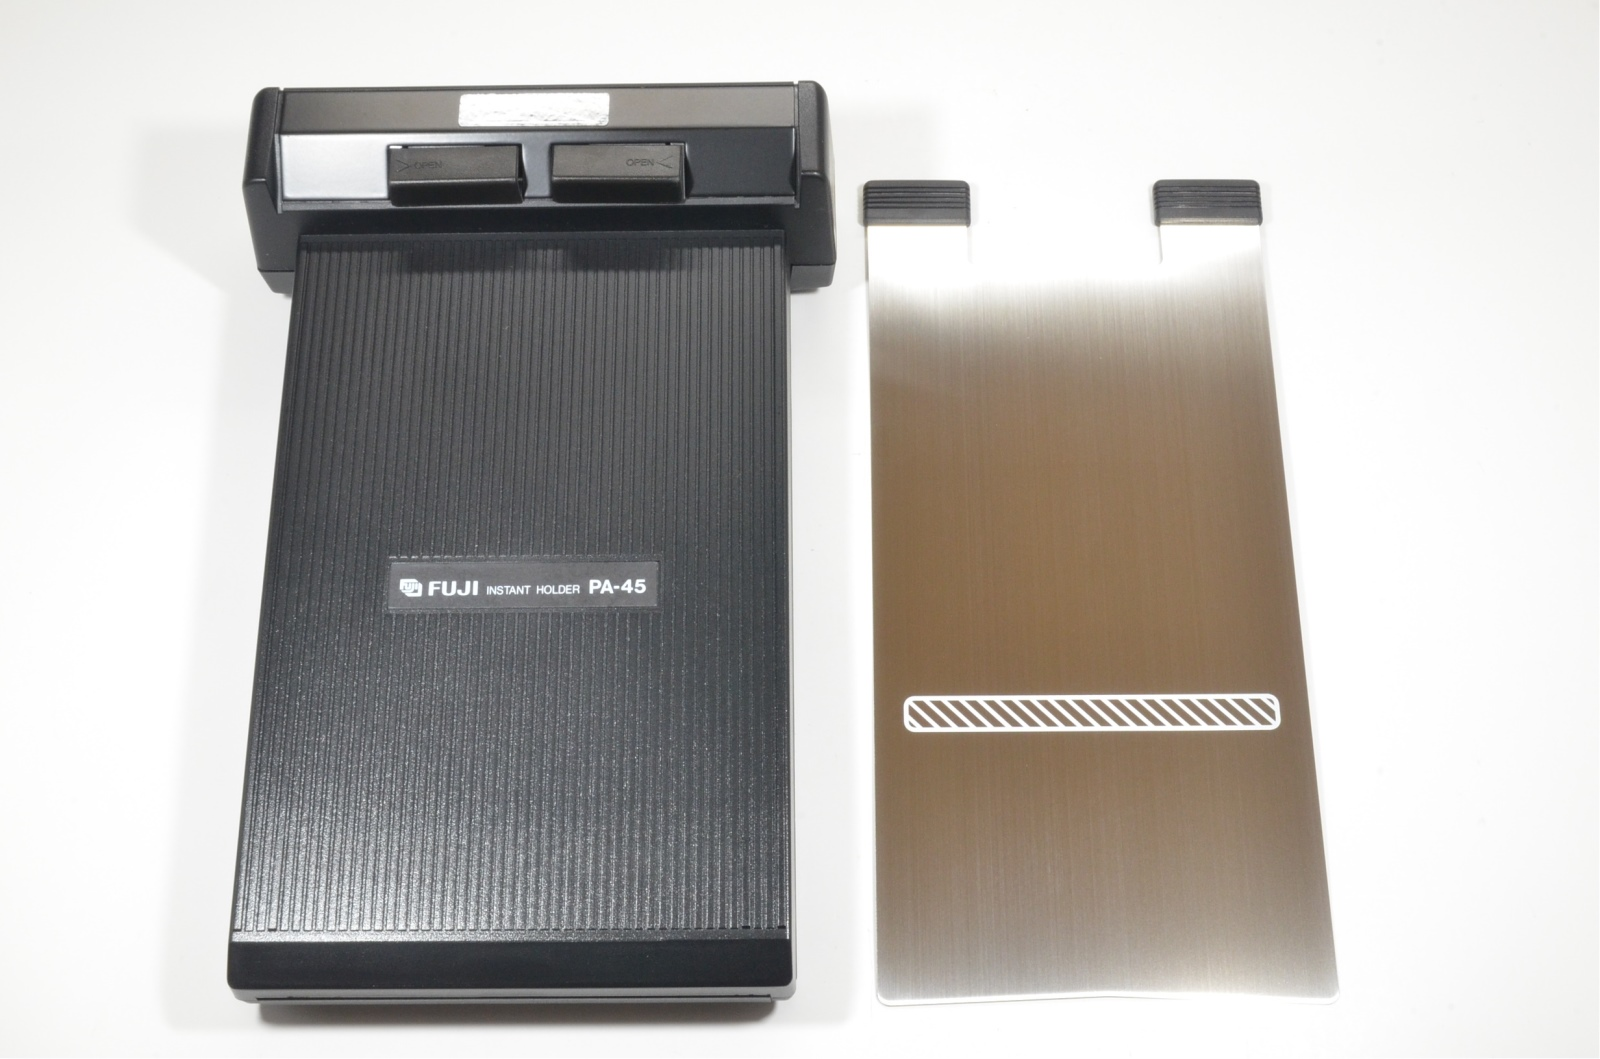 fuji fujifilm pa-45 4x5 polaroid instant film back holder 'unused'